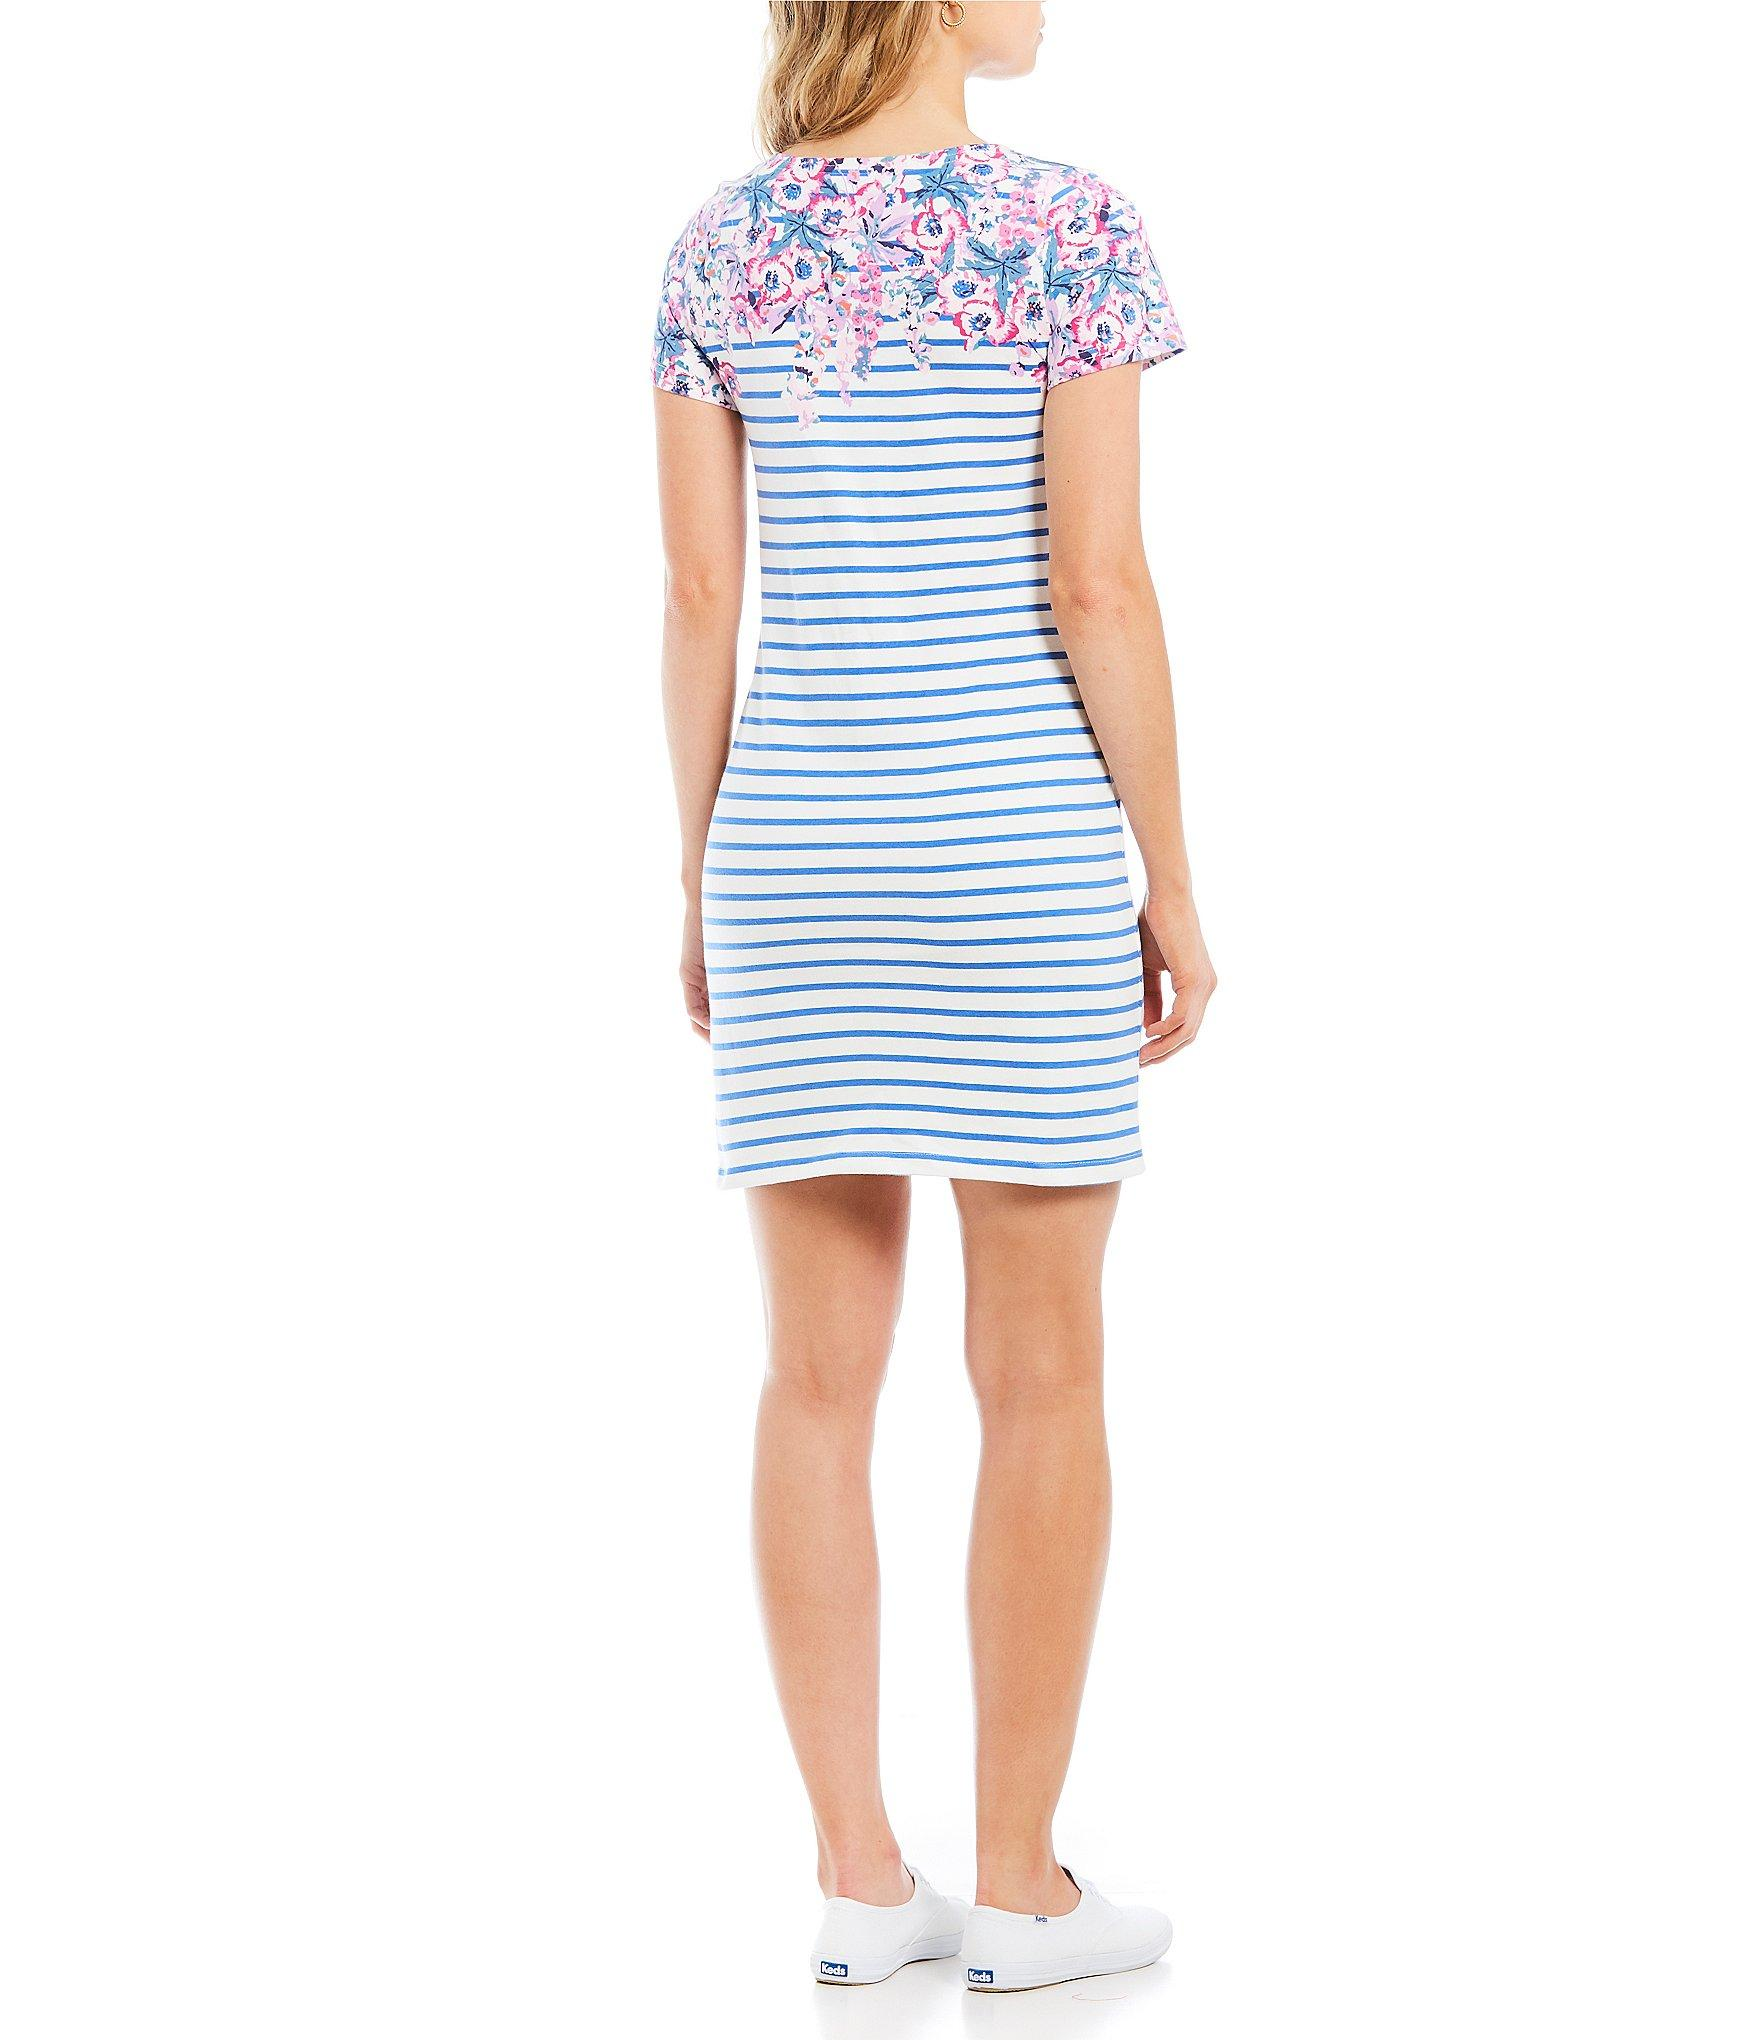 2bf2ae58a57 Joules - Blue Riviera Floral Print Striped Short Sleeve Shift Dress - Lyst.  View fullscreen